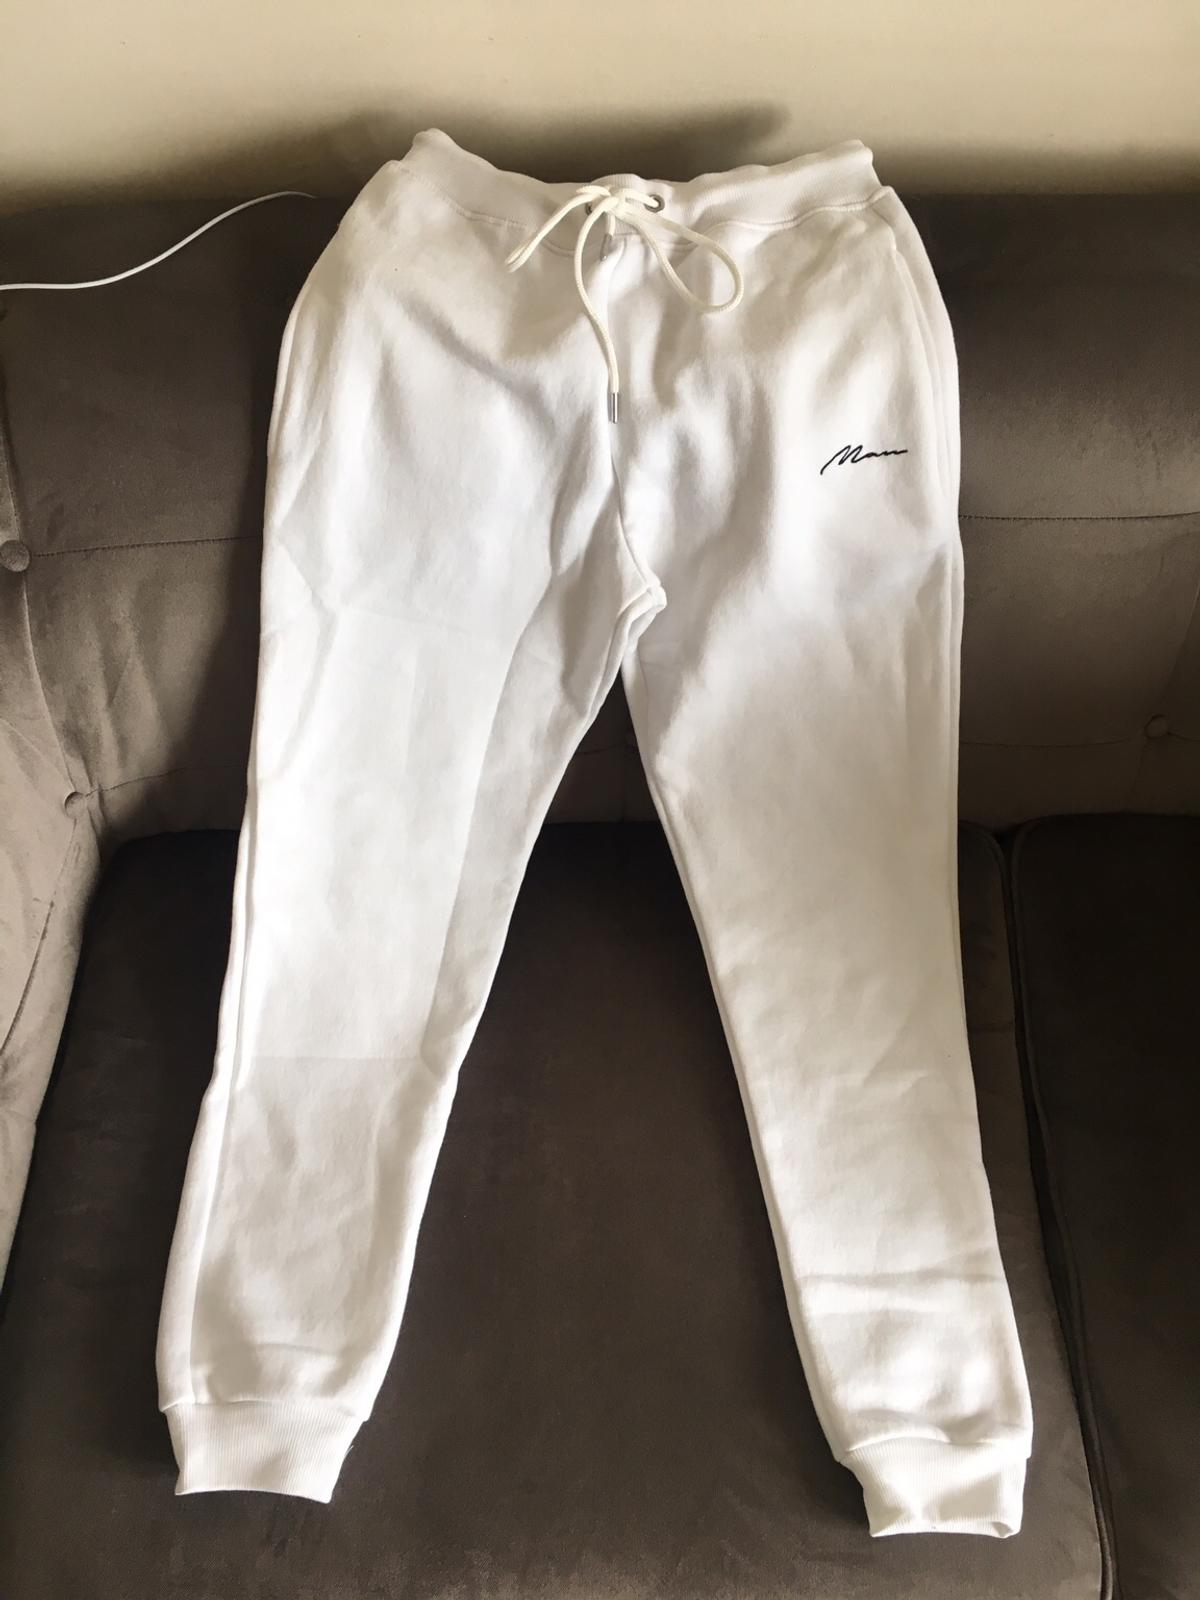 acfa6b1d BOOHOO MAN TRACKSUIT - WHITE in London Borough of Barking and ...